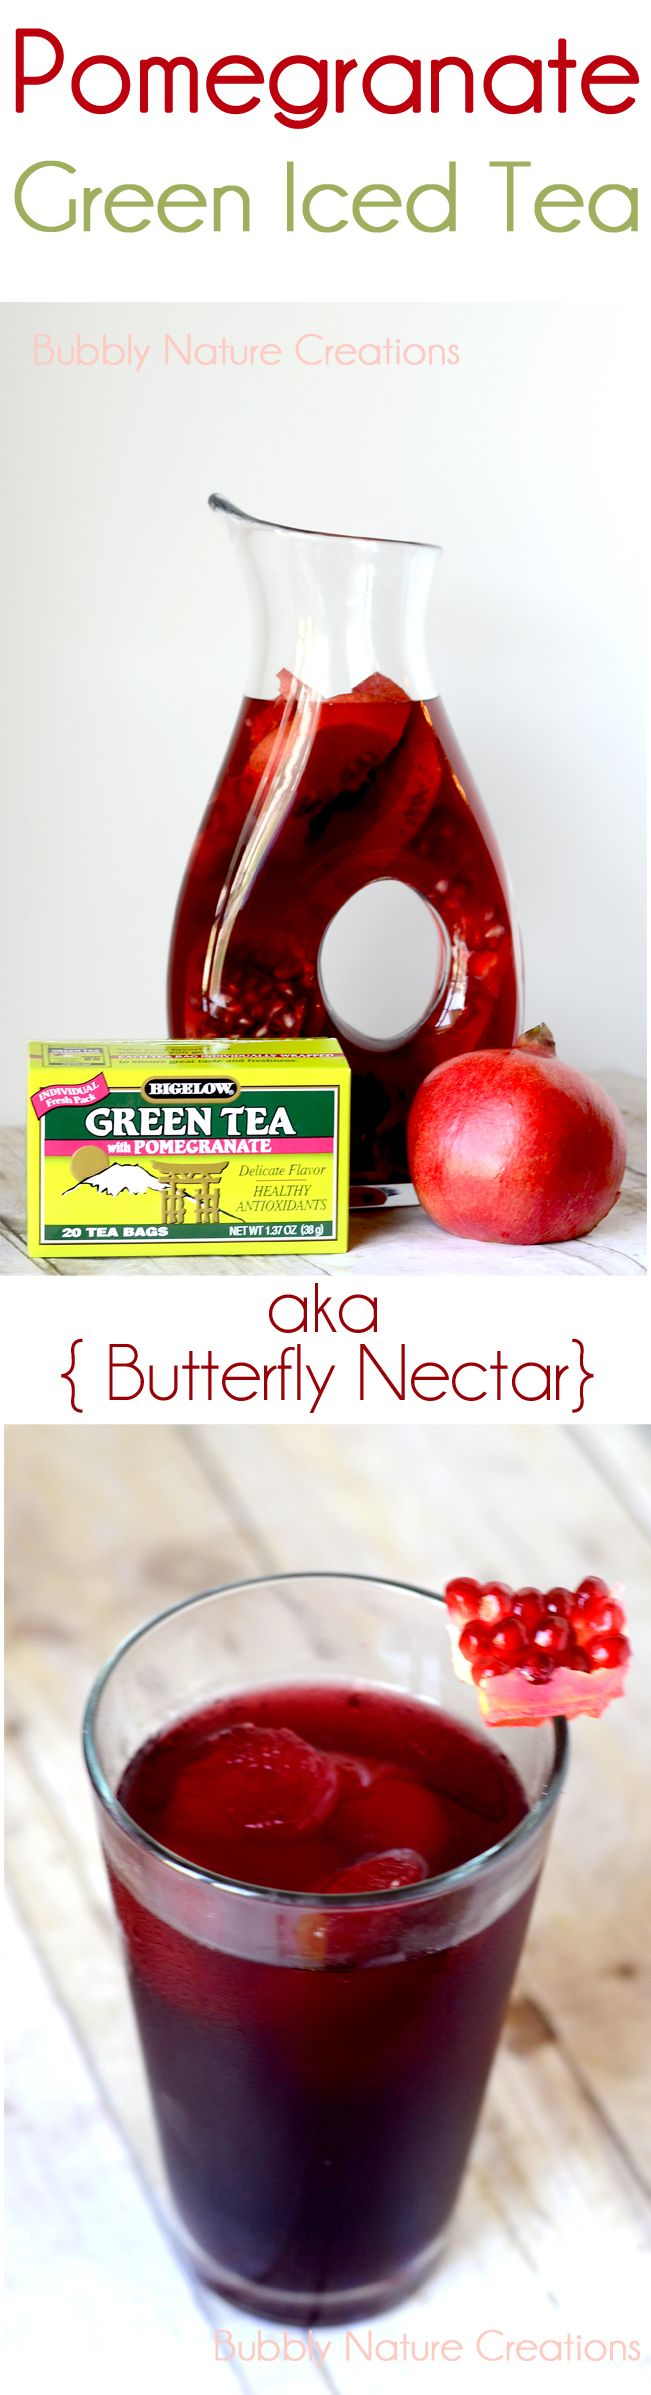 Pomegranate Green Iced Tea - sounds yummy!